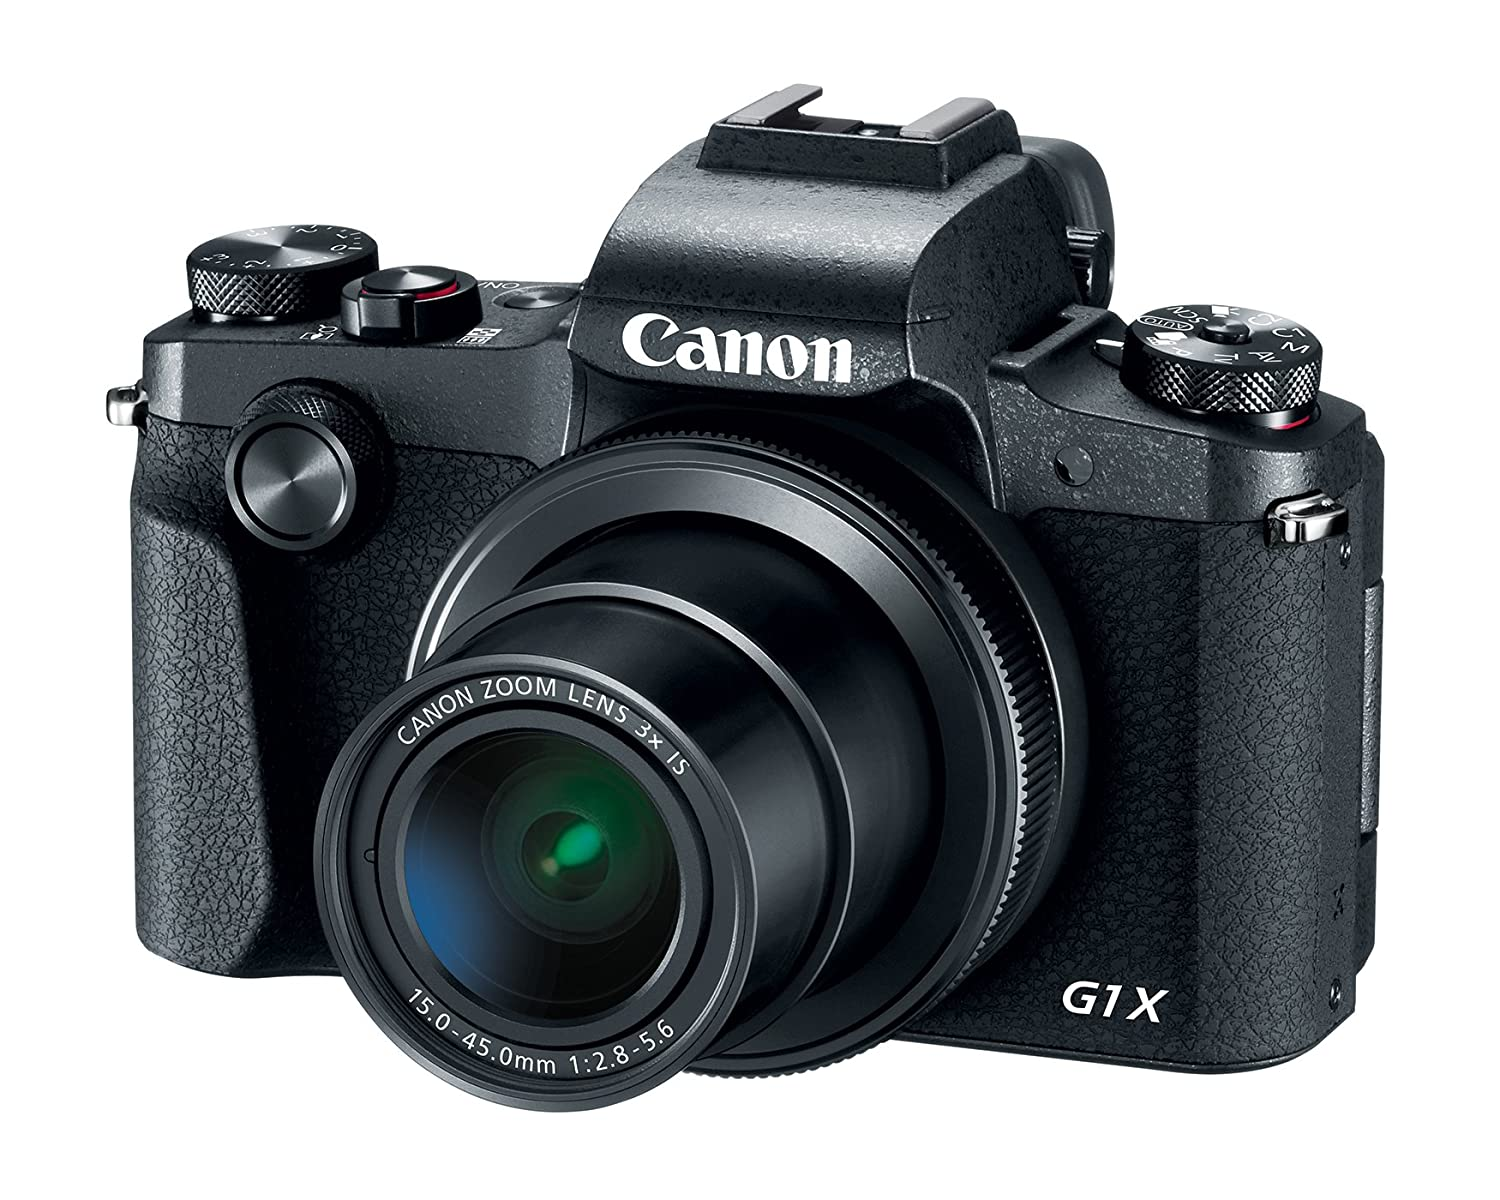 Canon PowerShot G1 X Mark III Digital Camera Canon Canada (Direct) 2208C001